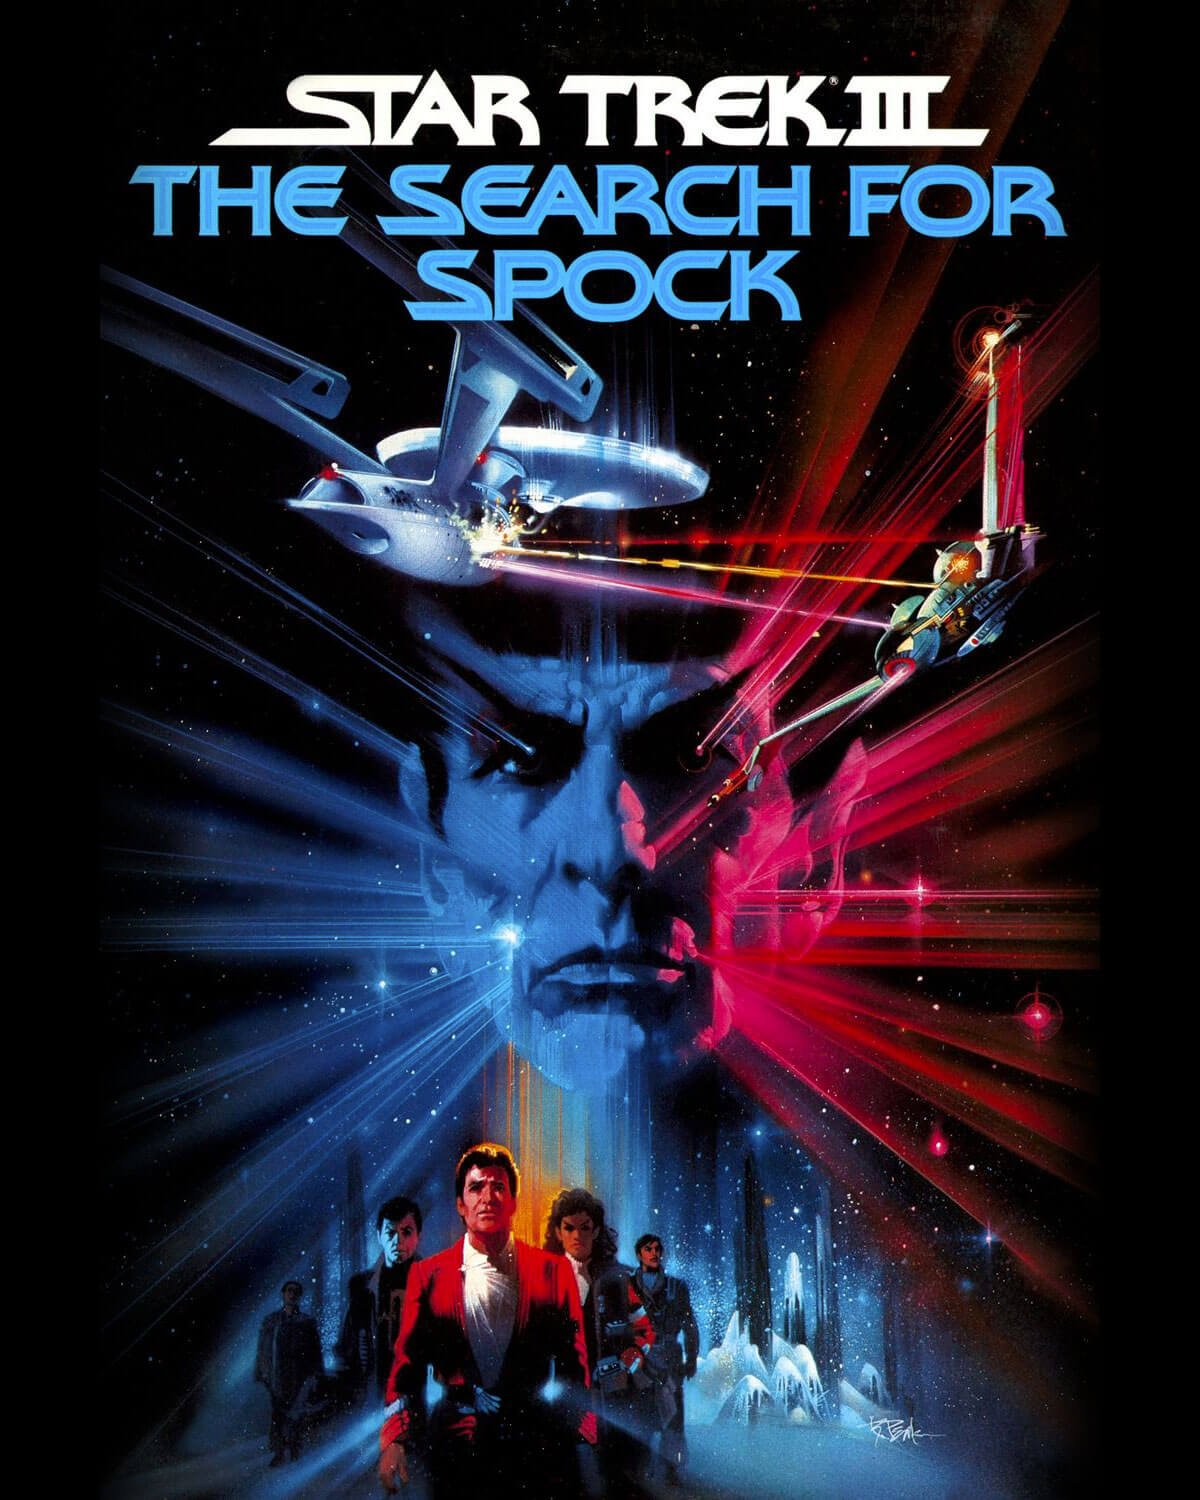 Star Trek III: The Search for Spock, 1984